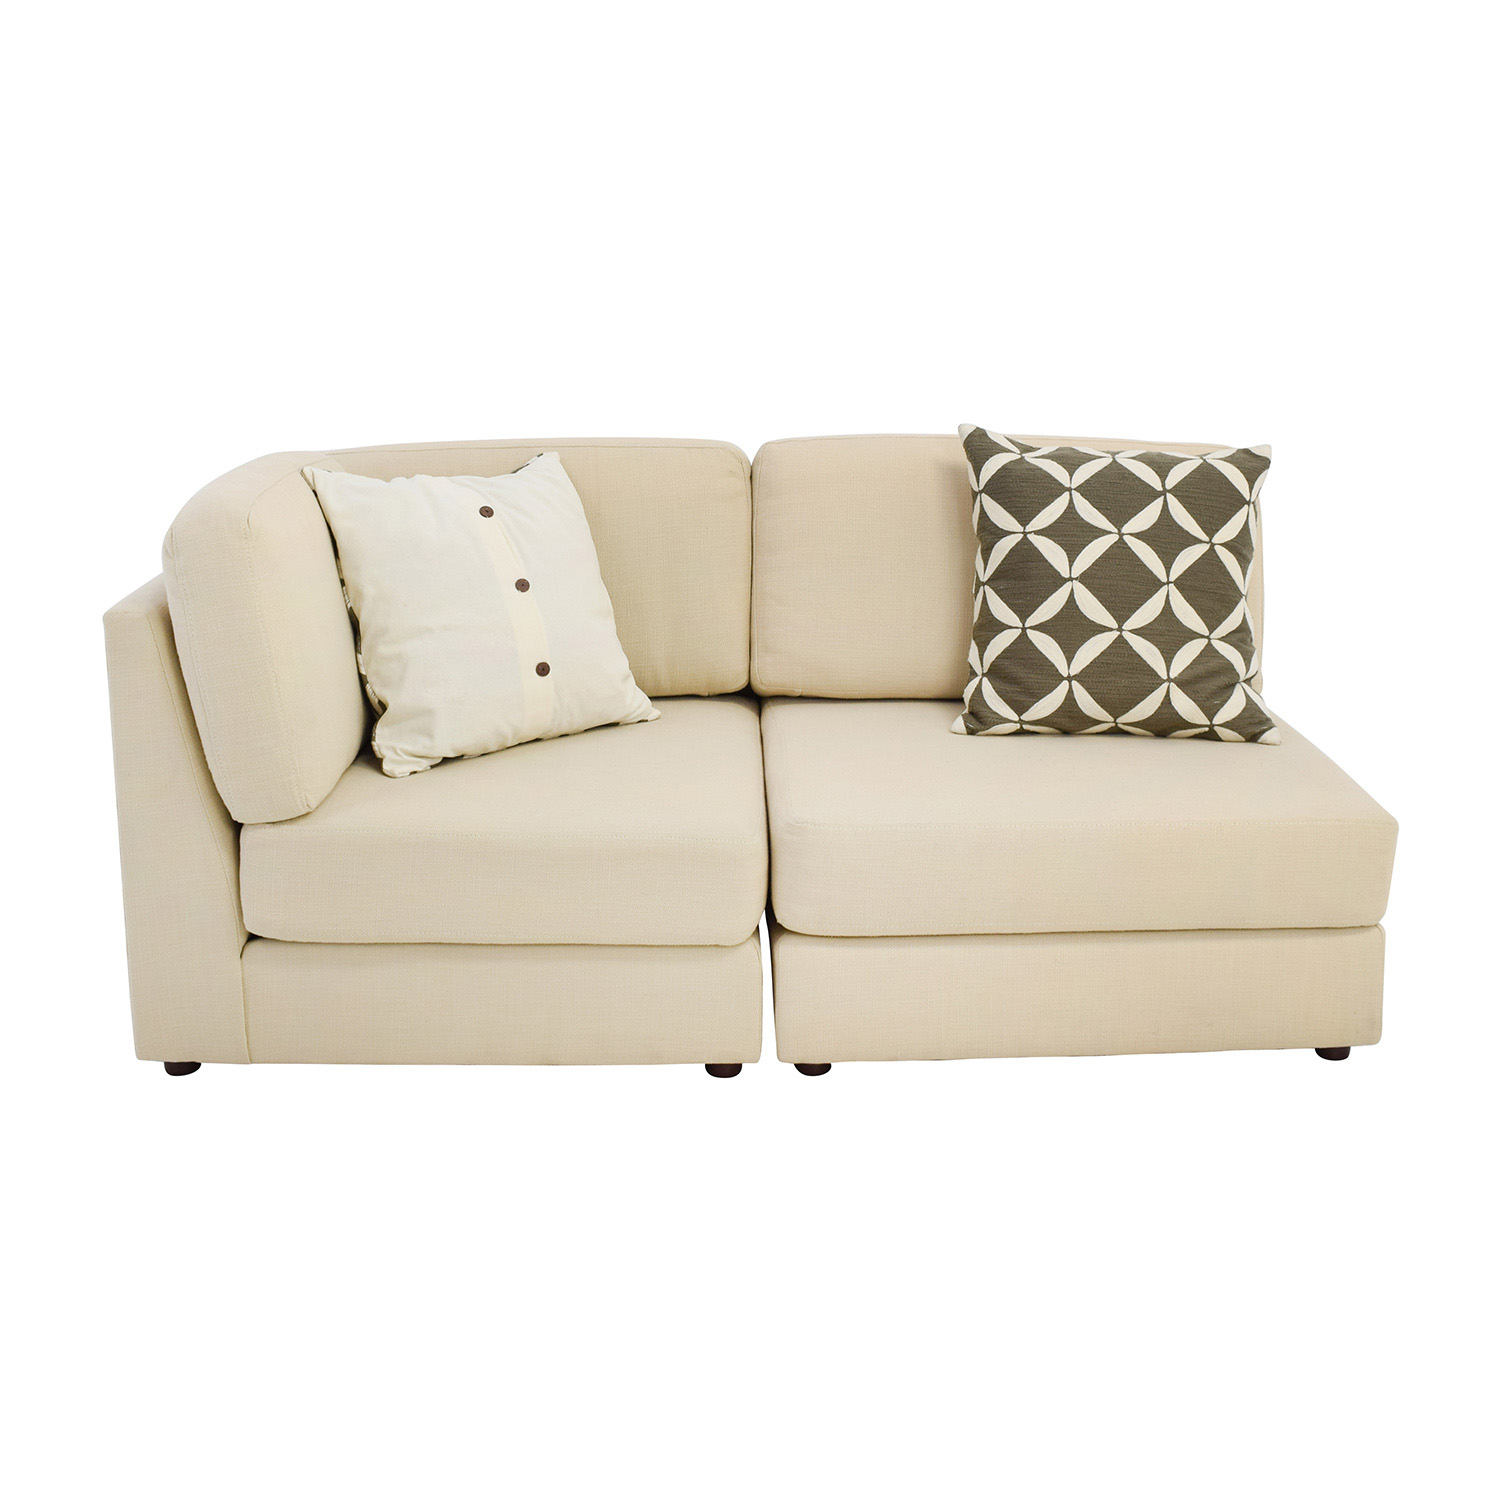 76% Off – West Elm West Elm Cream Chaise Sofa Or Two Chairs / Sofas Throughout Elm Sofa Chairs (Photo 7 of 20)